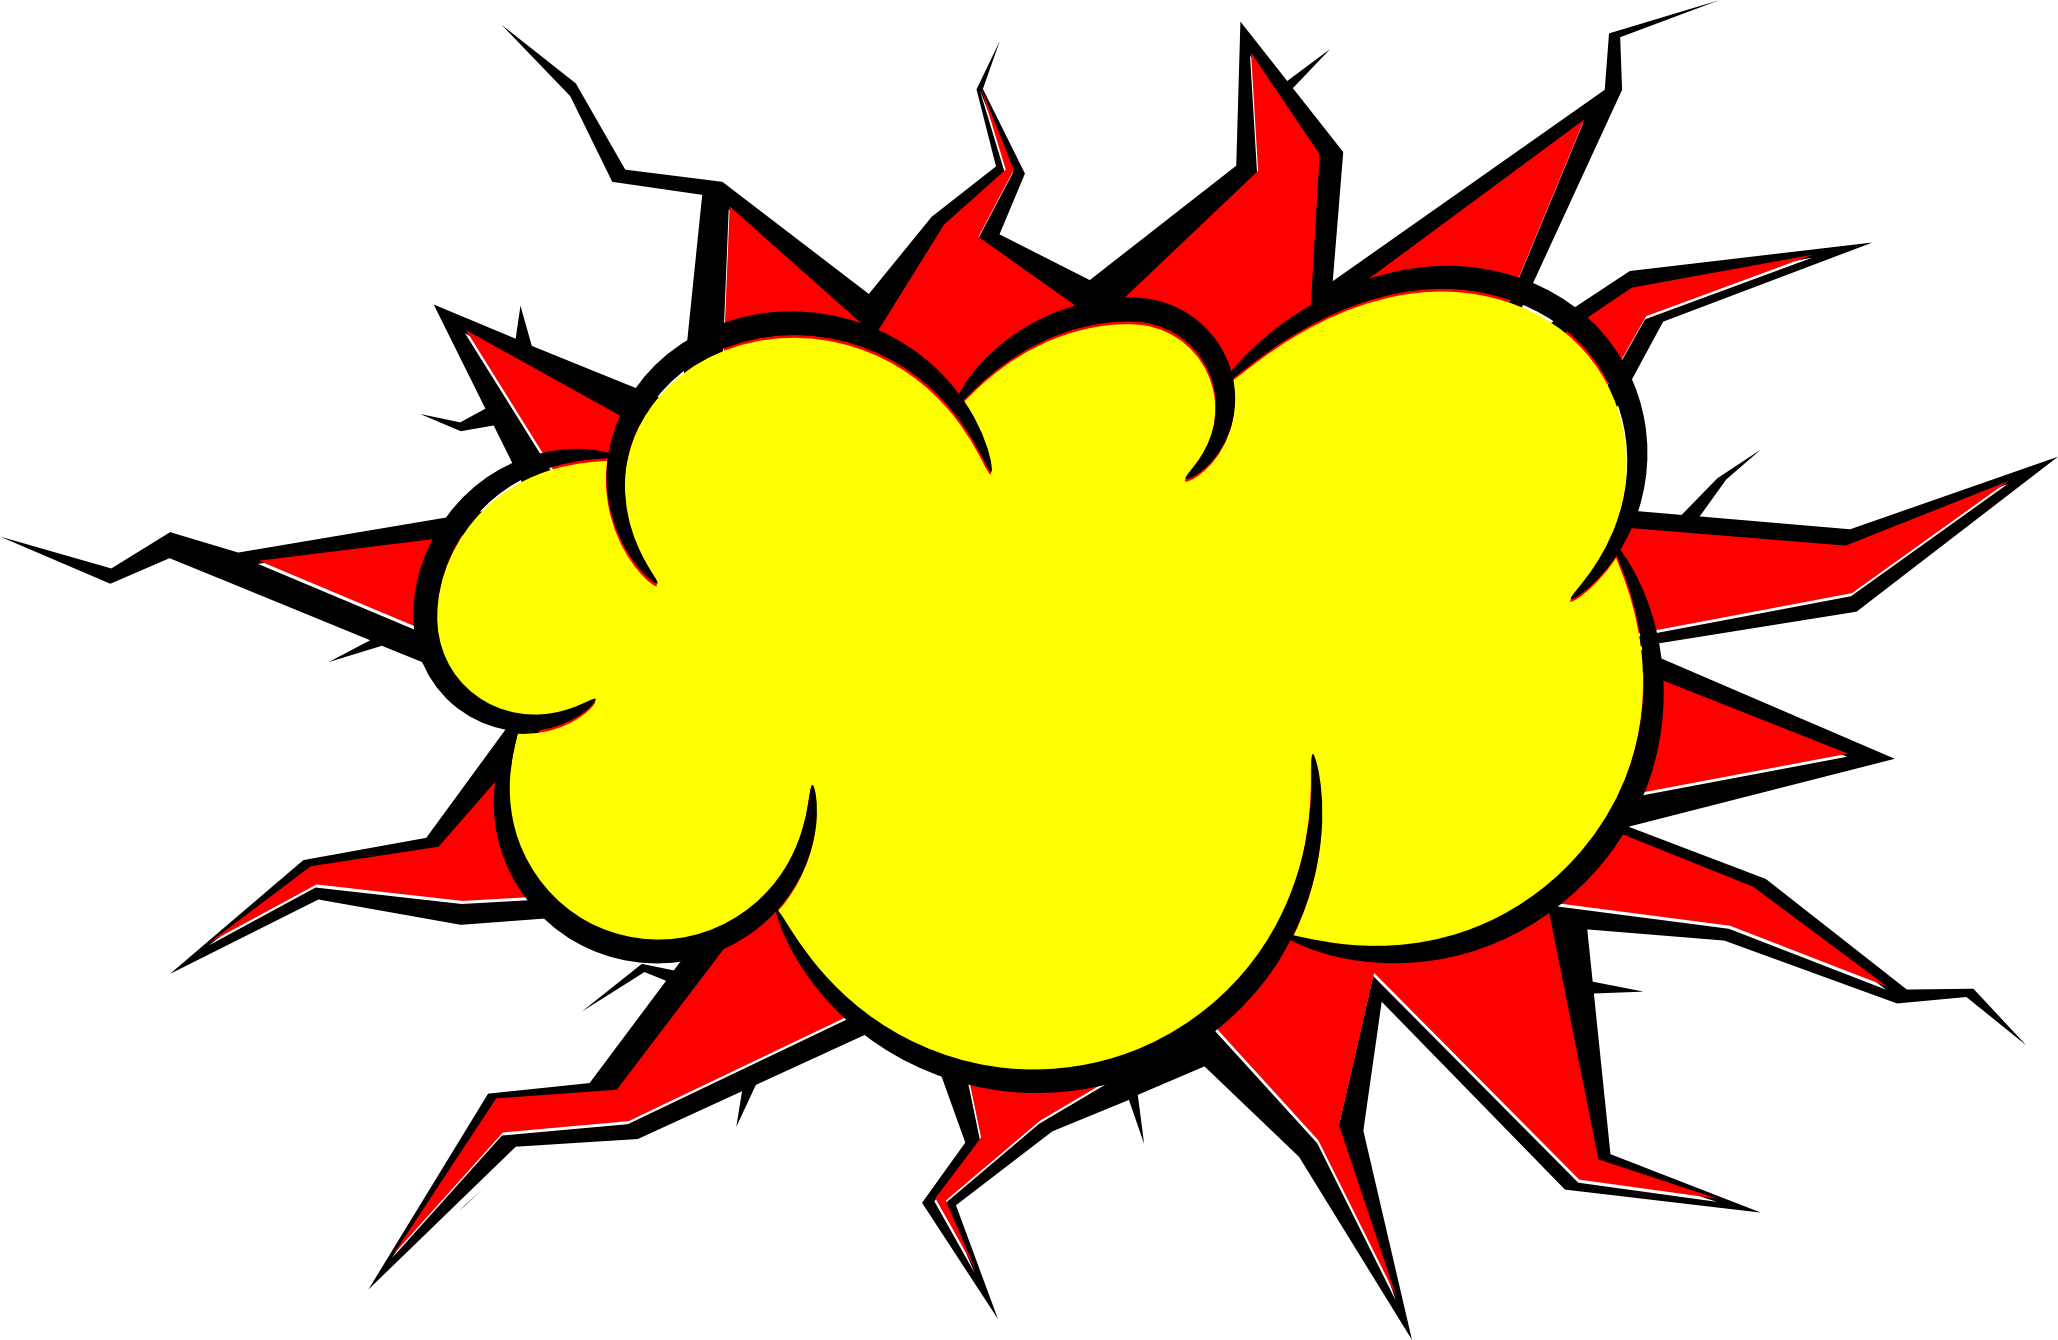 Comic book explosion png. Images in collection page